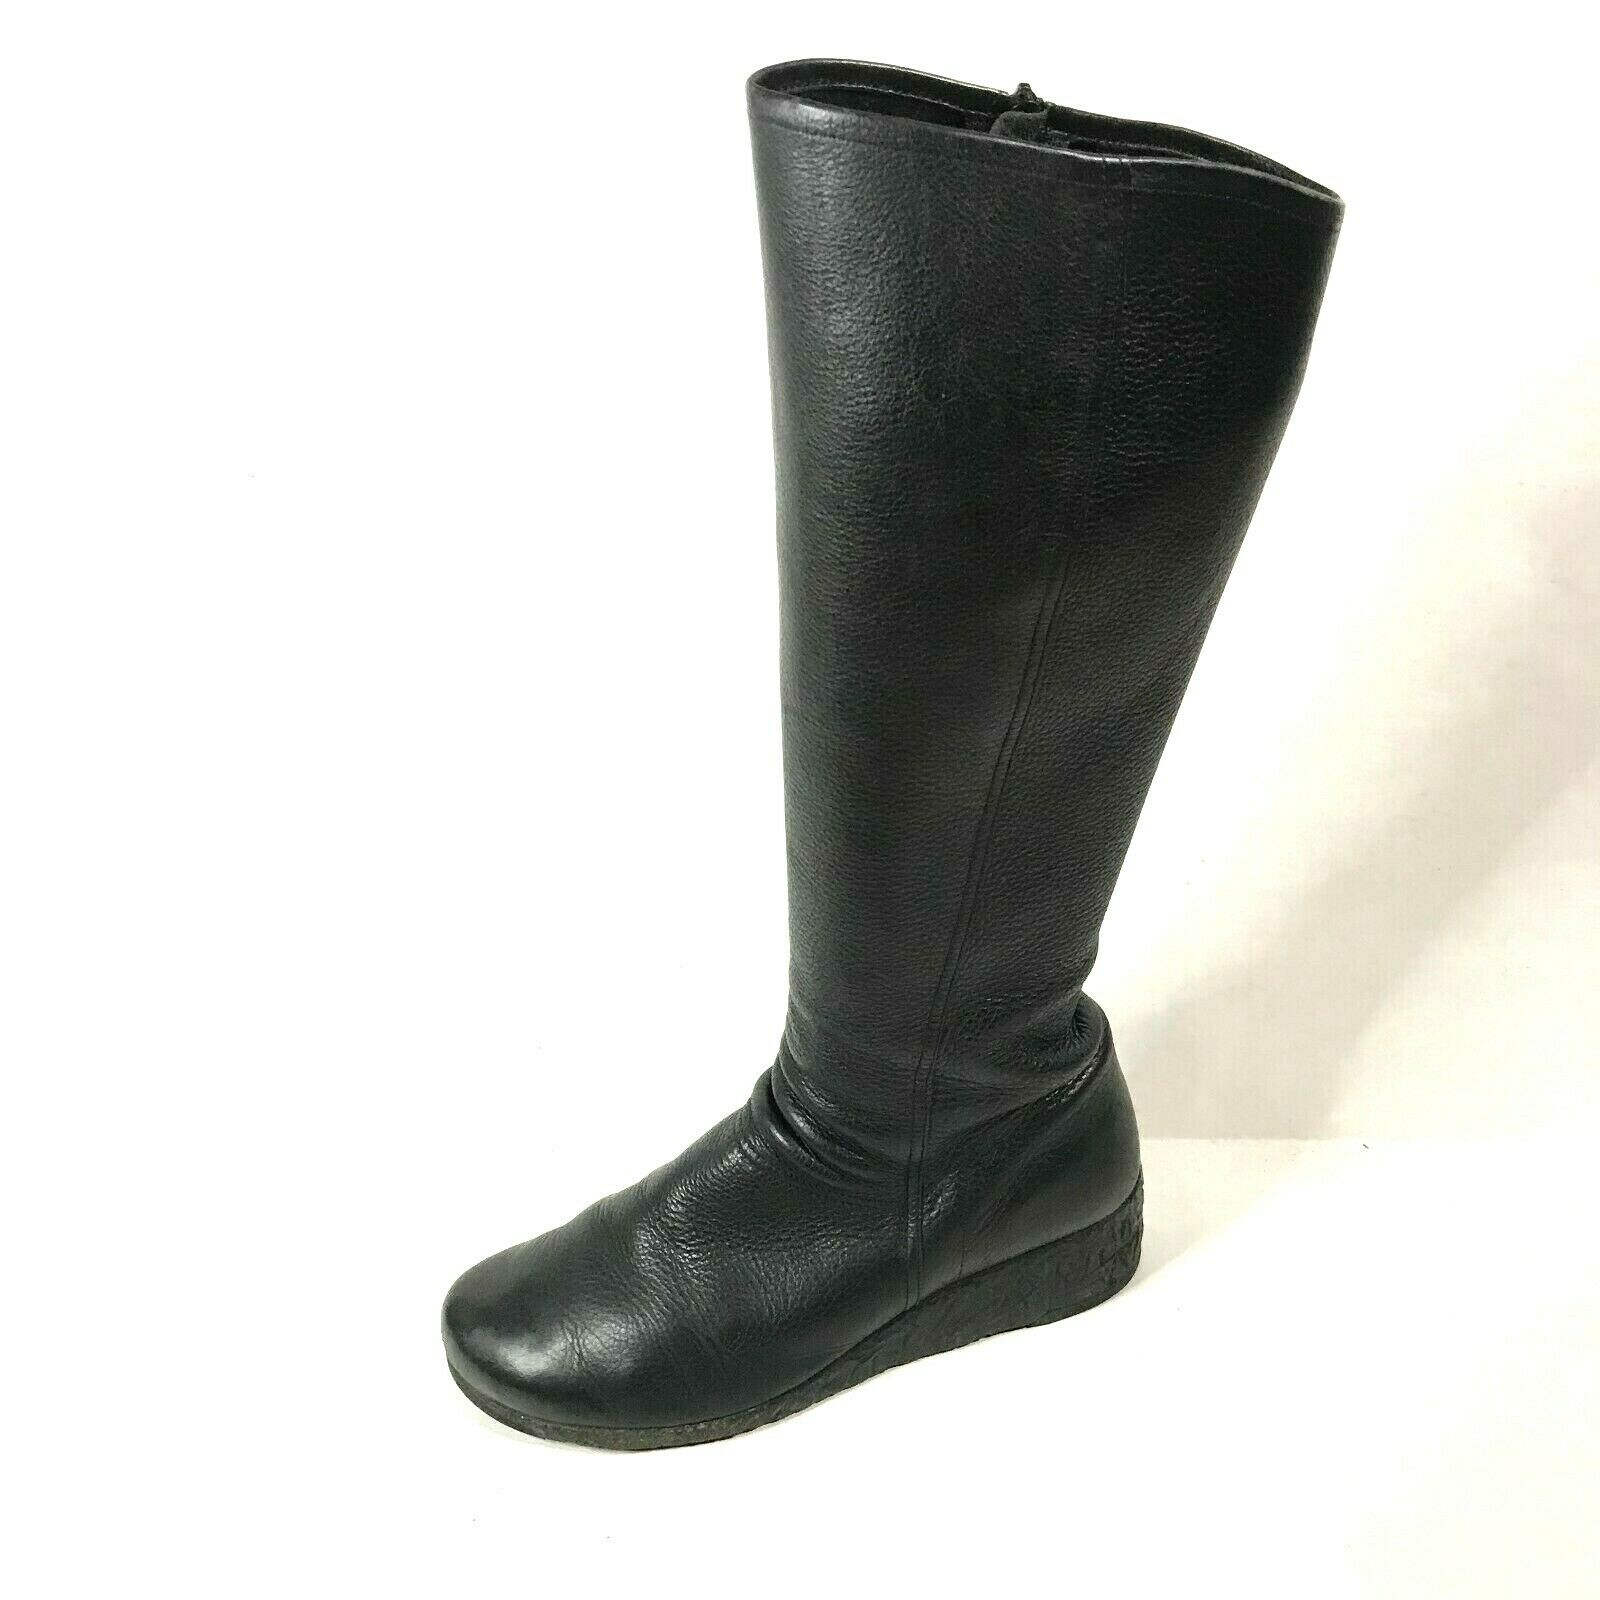 Arche Ln Tall Wedge Boots Size 41 Black Leather ASIS